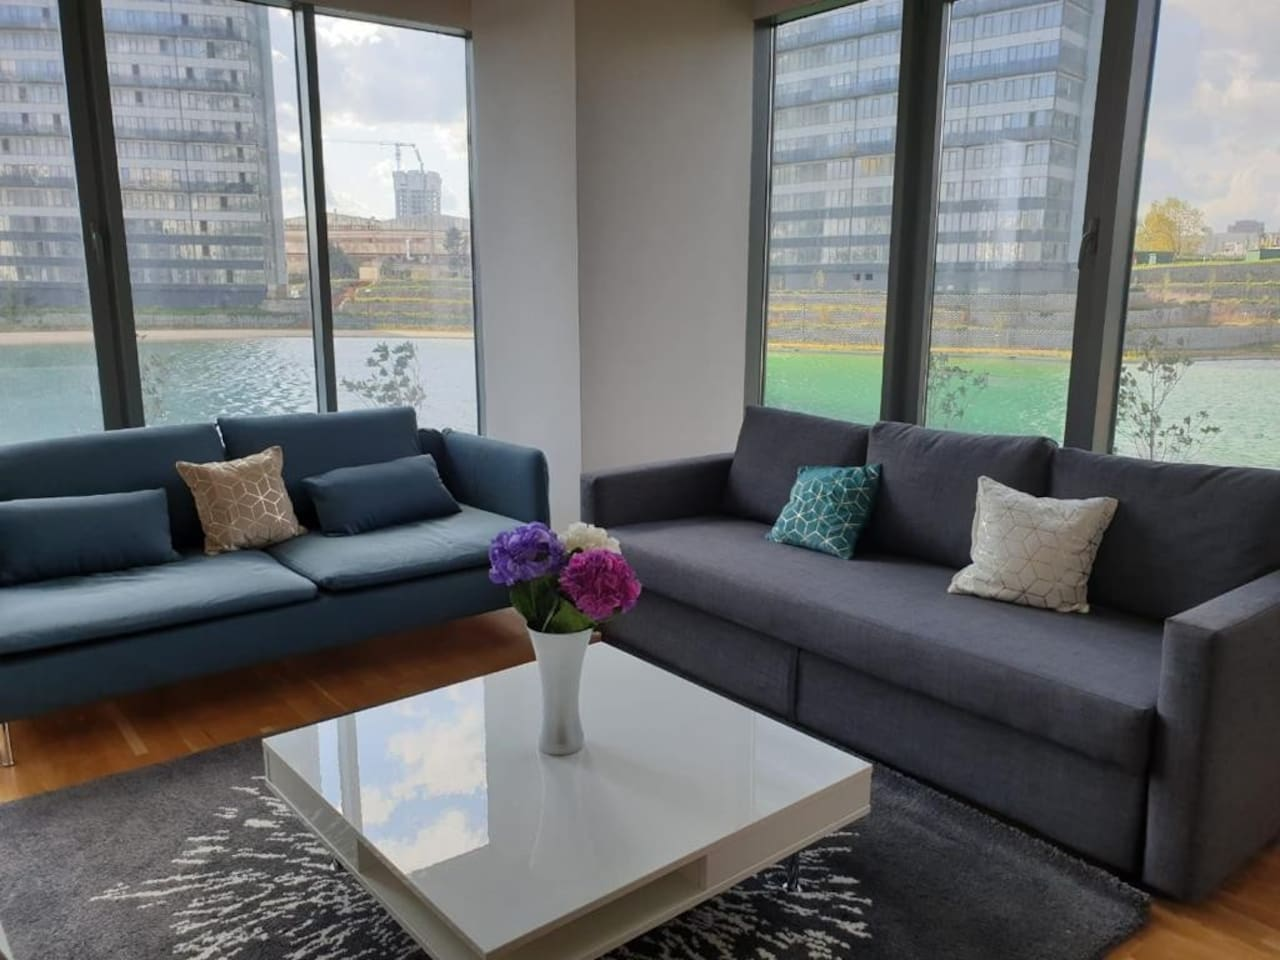 The living room doubles as a dining room with a table suitable for 6 against the far wall. It has views of the lake from all sides and a Smart TV to watch Netflix on. The grey couch doubles as a bed and can be pulled out at night